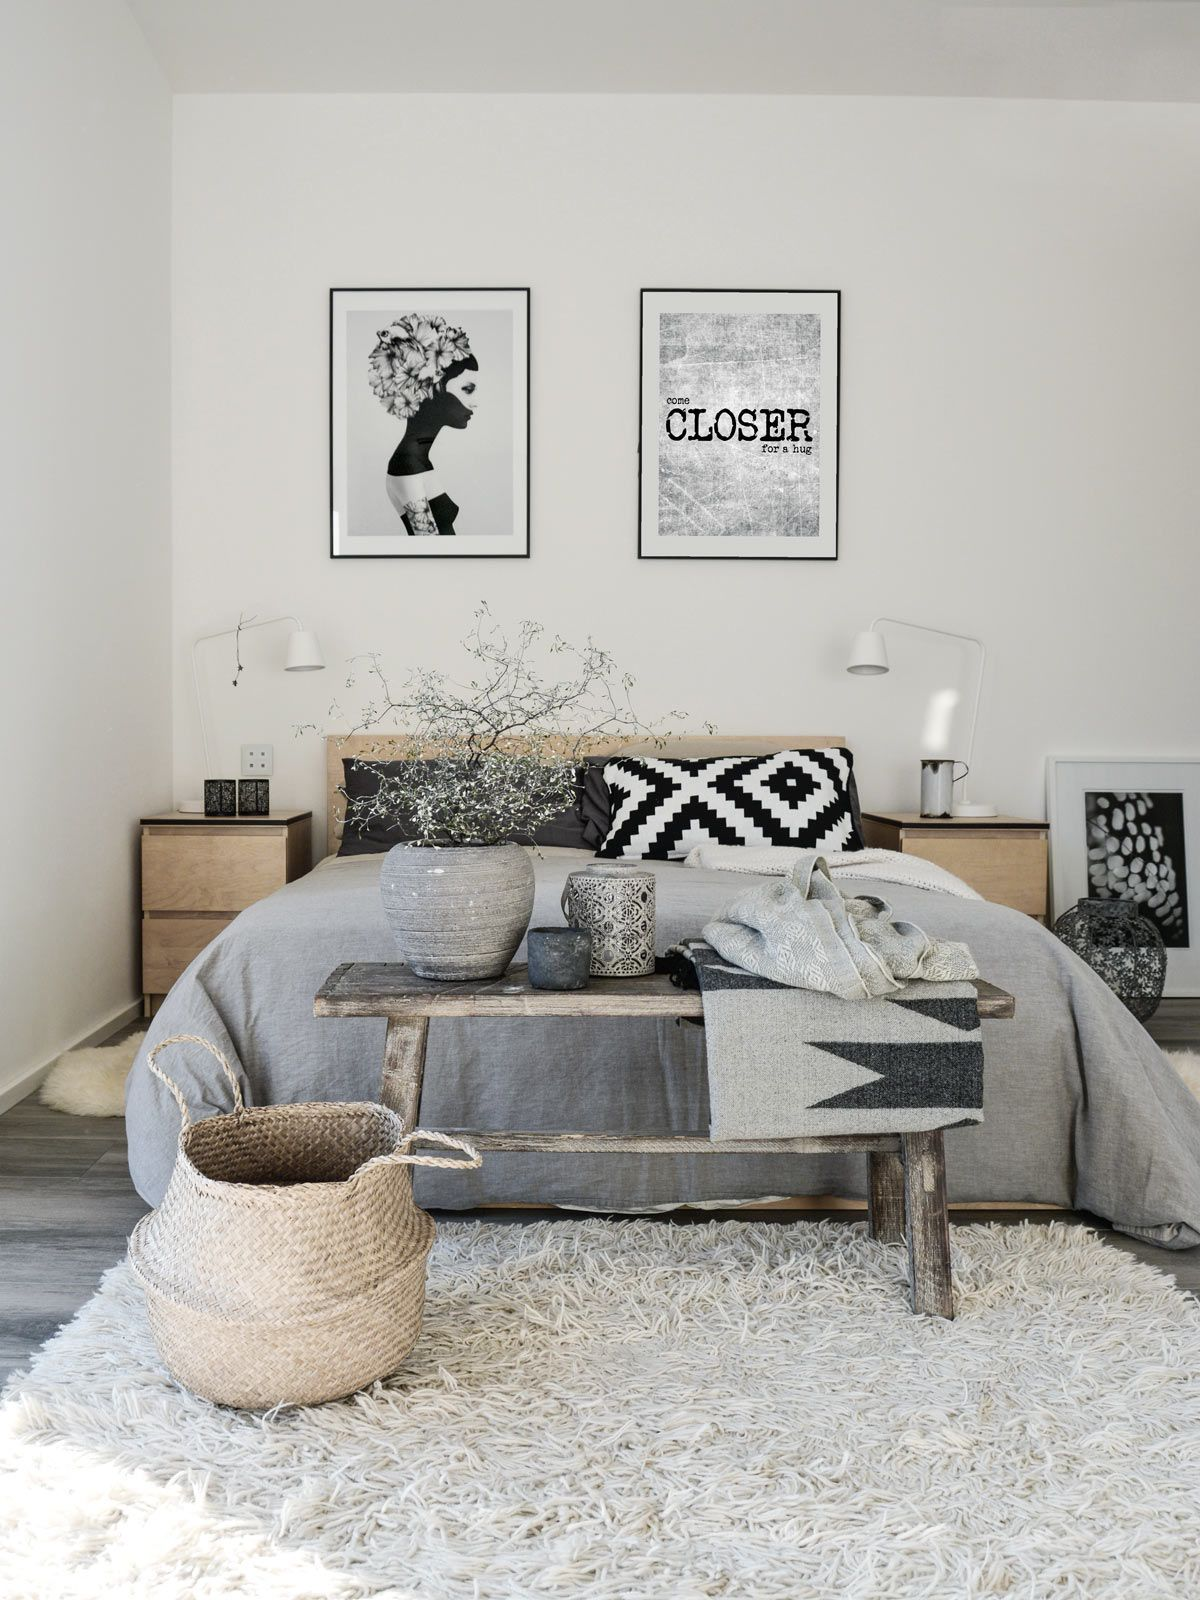 zimmer einrichten die perfekte zimmergestaltung. Black Bedroom Furniture Sets. Home Design Ideas